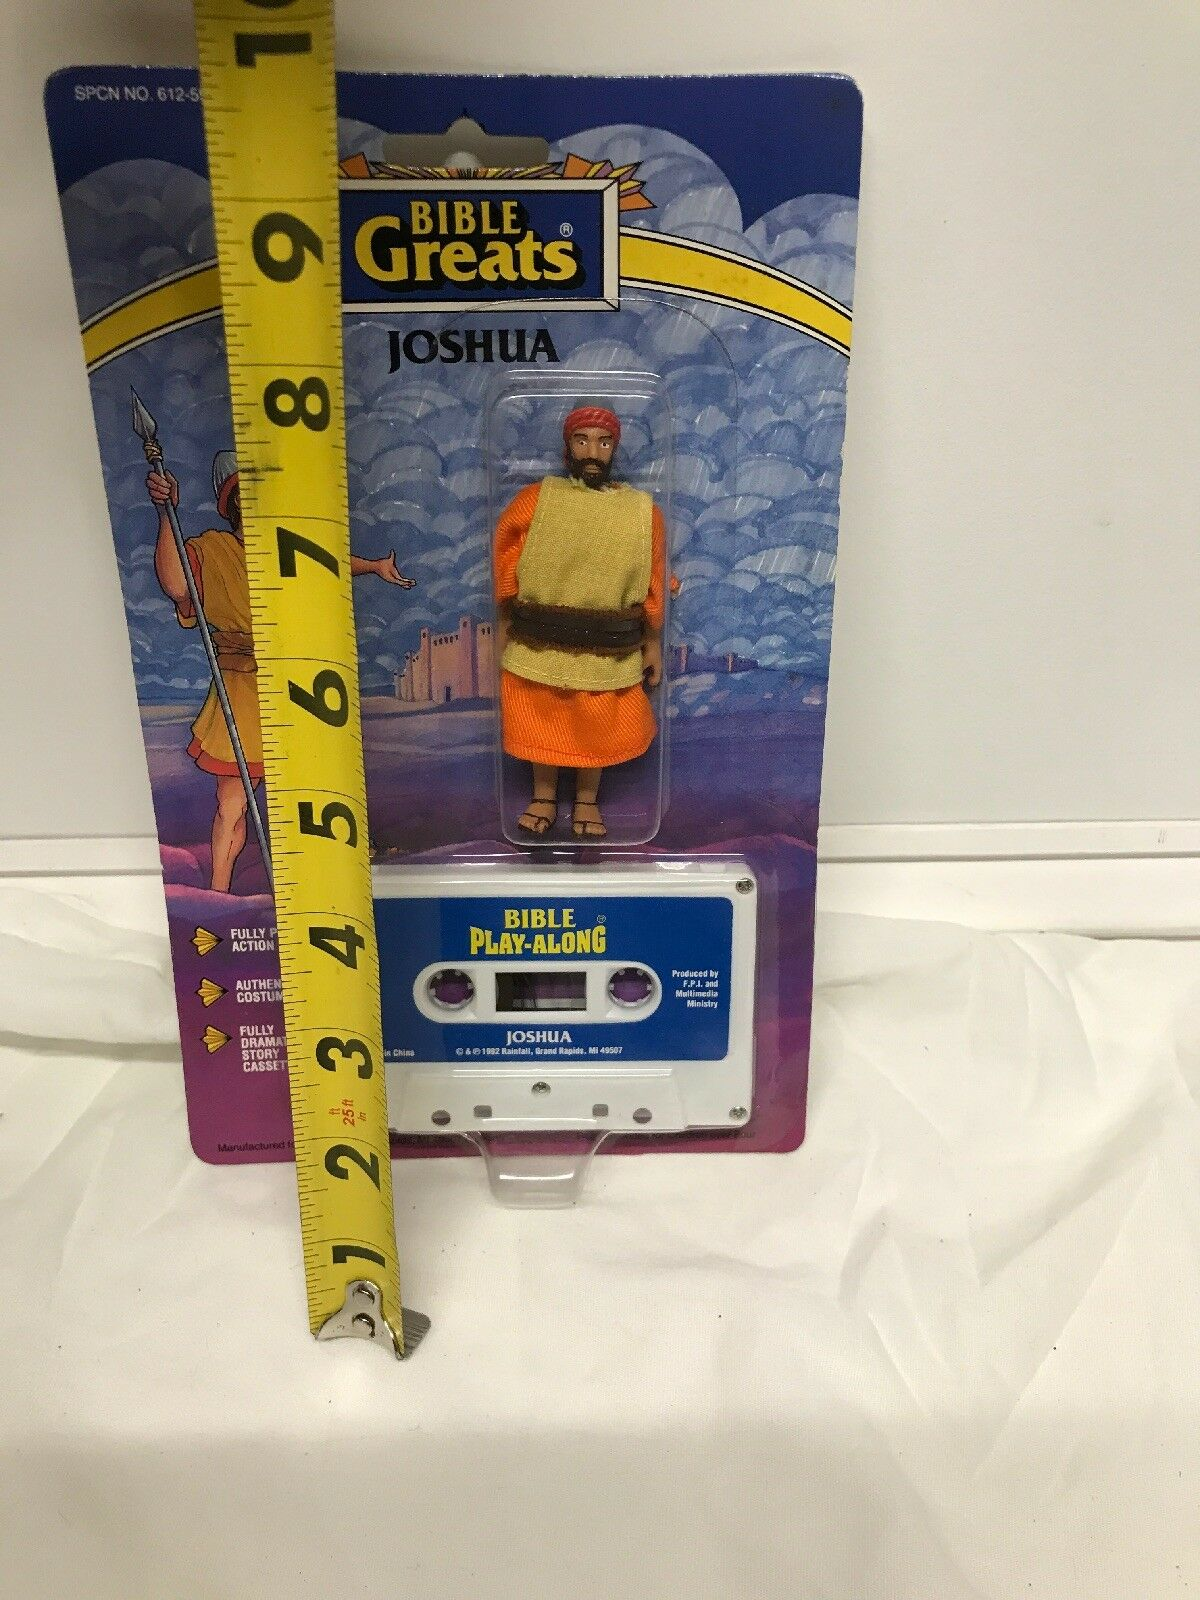 BIBLE GREATS Vintage 1991 Bible Action Figure Joshua Factory Sealed Sealed Sealed Scarce a79ecc